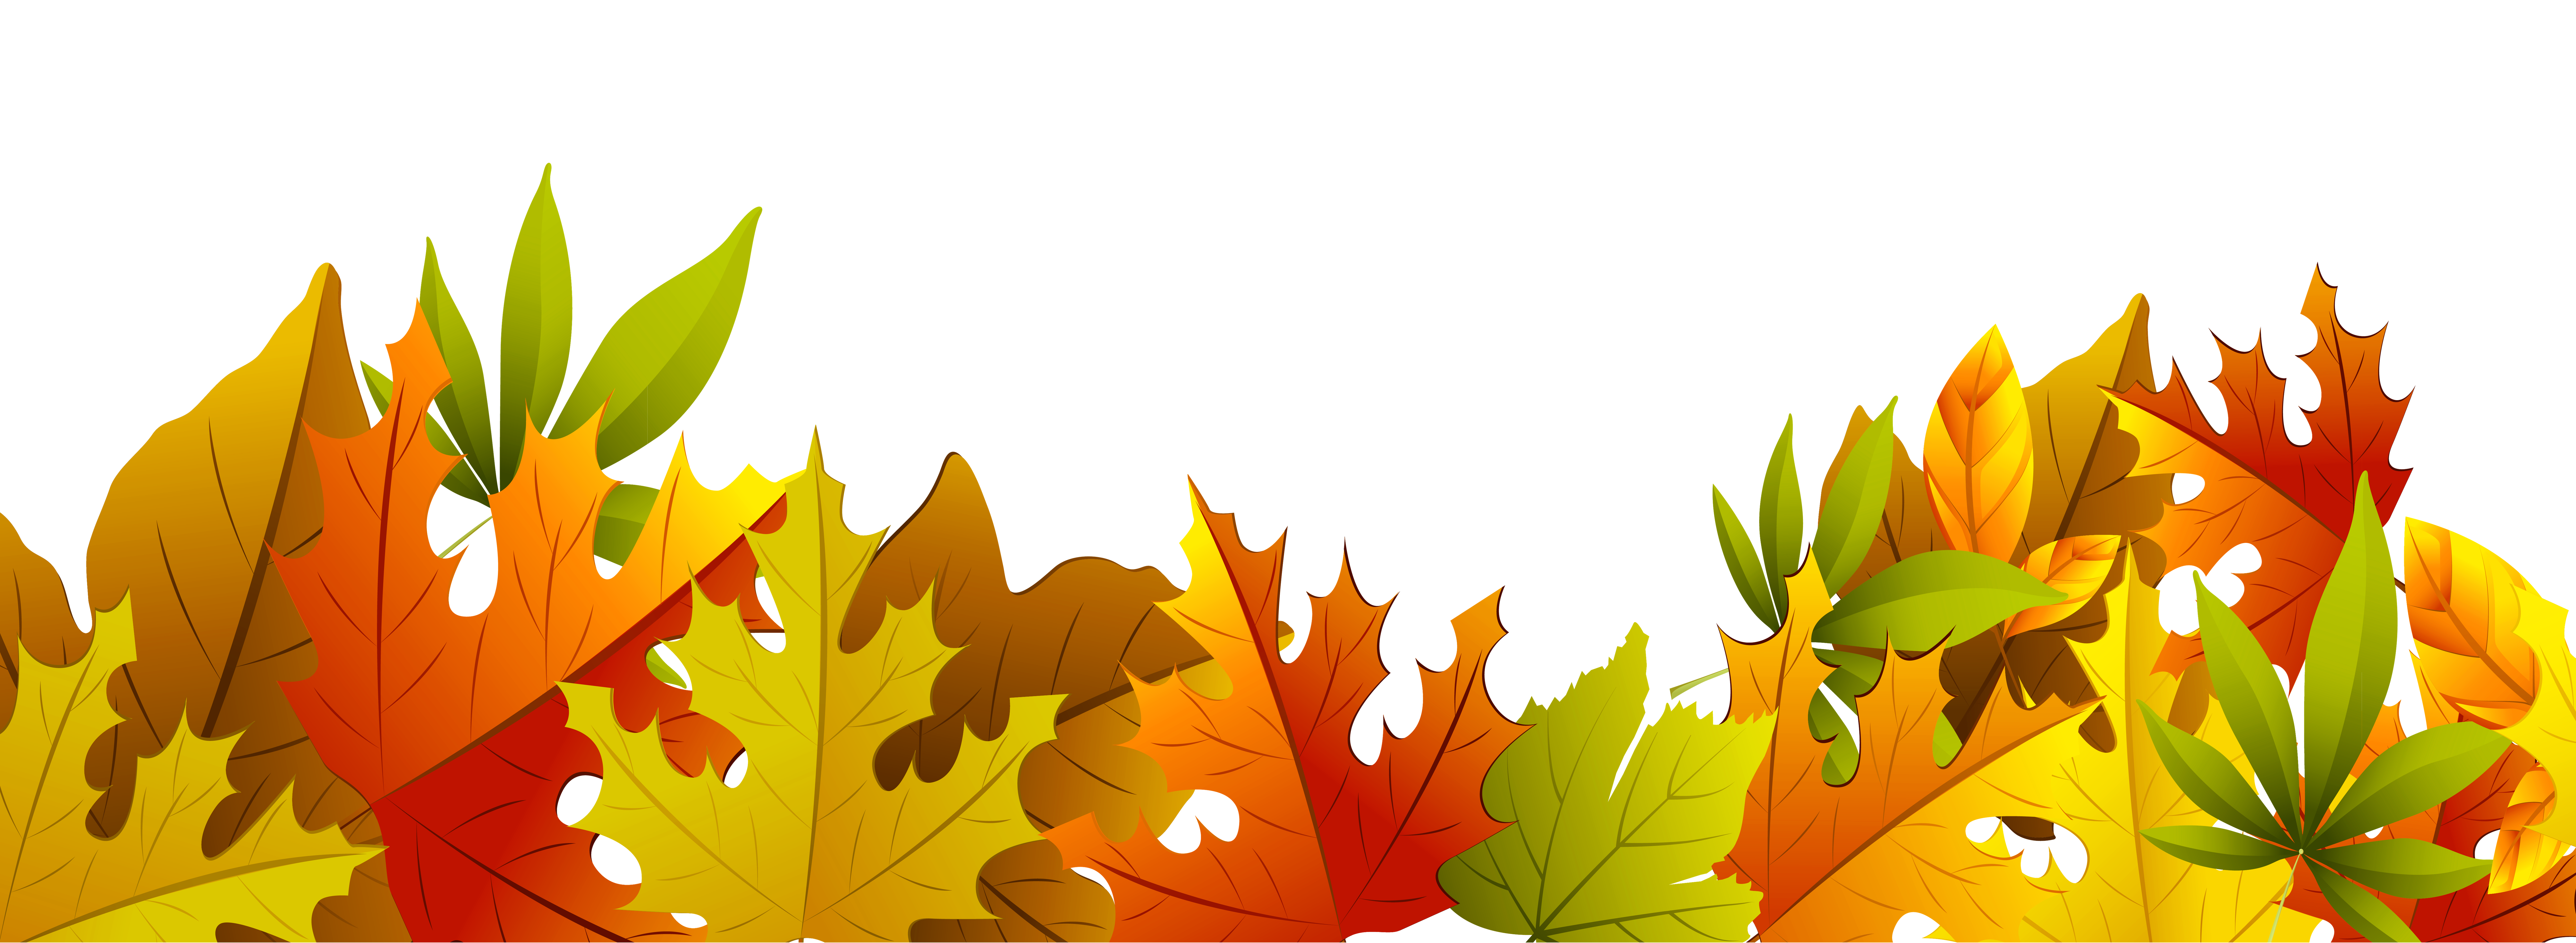 Fall border png. Decorative autumn leaves clipart